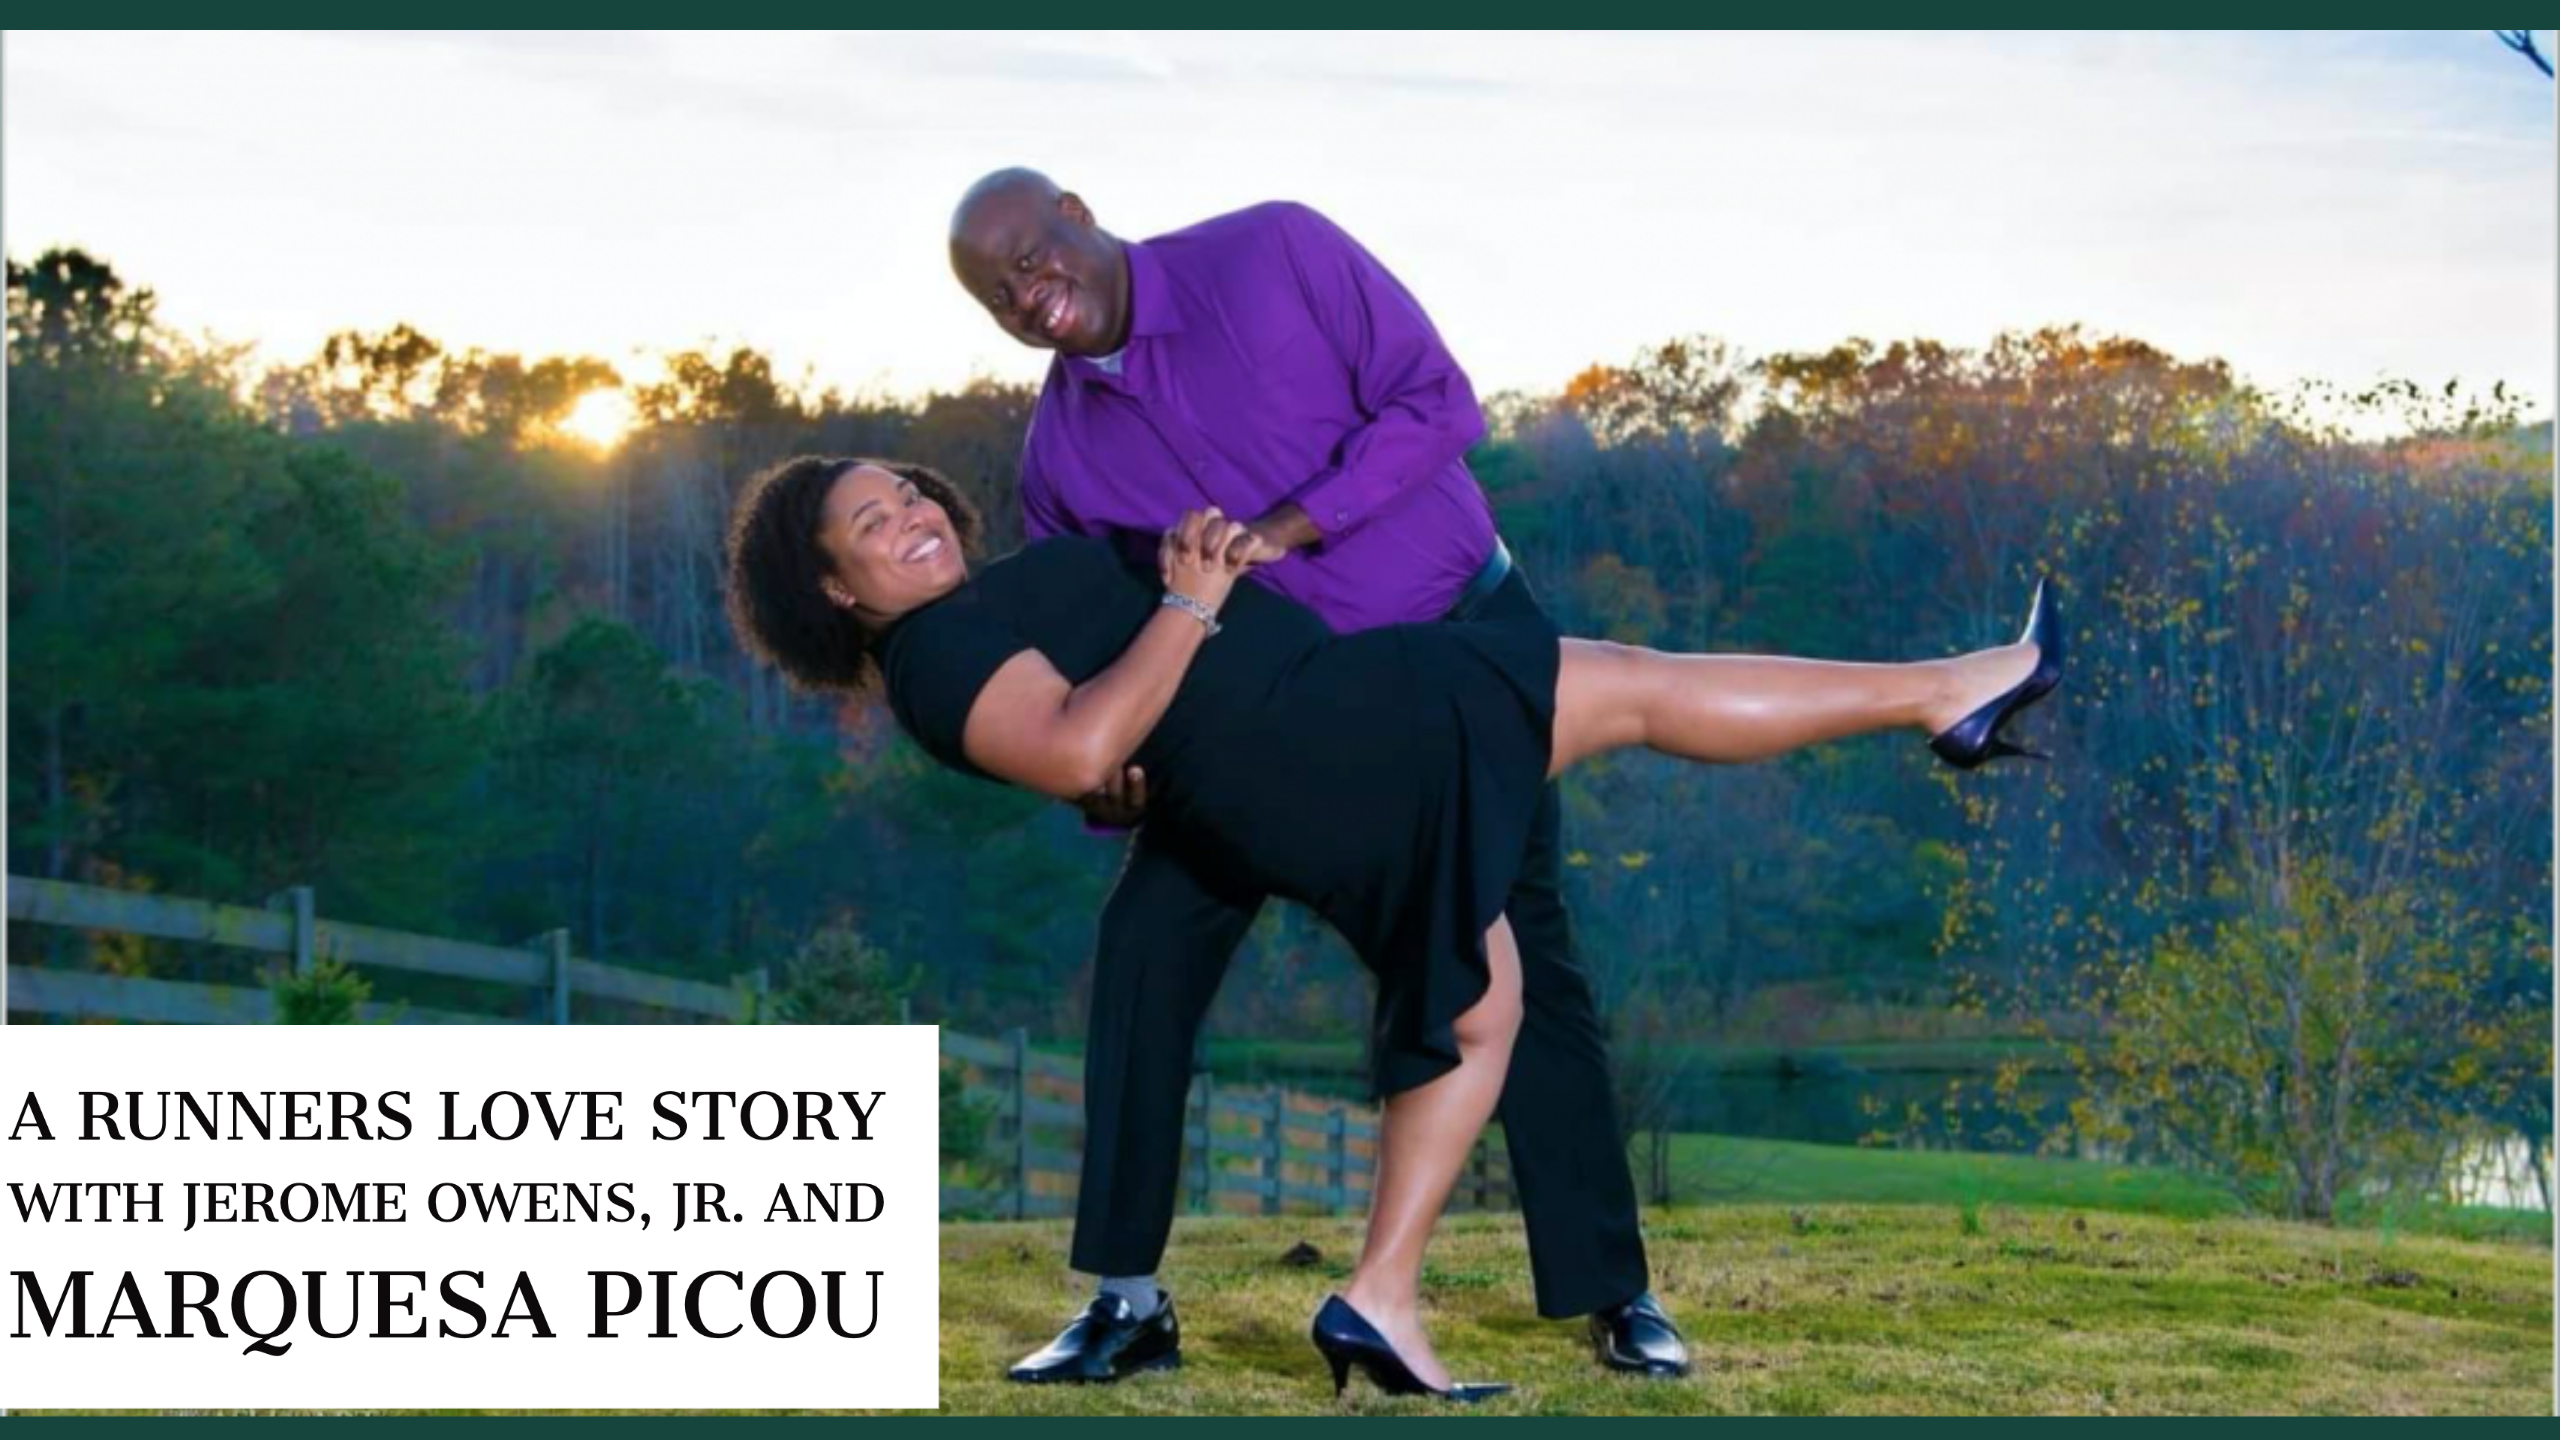 Love On The Run with Jerome Owens, Jr. and Marquesa Picou